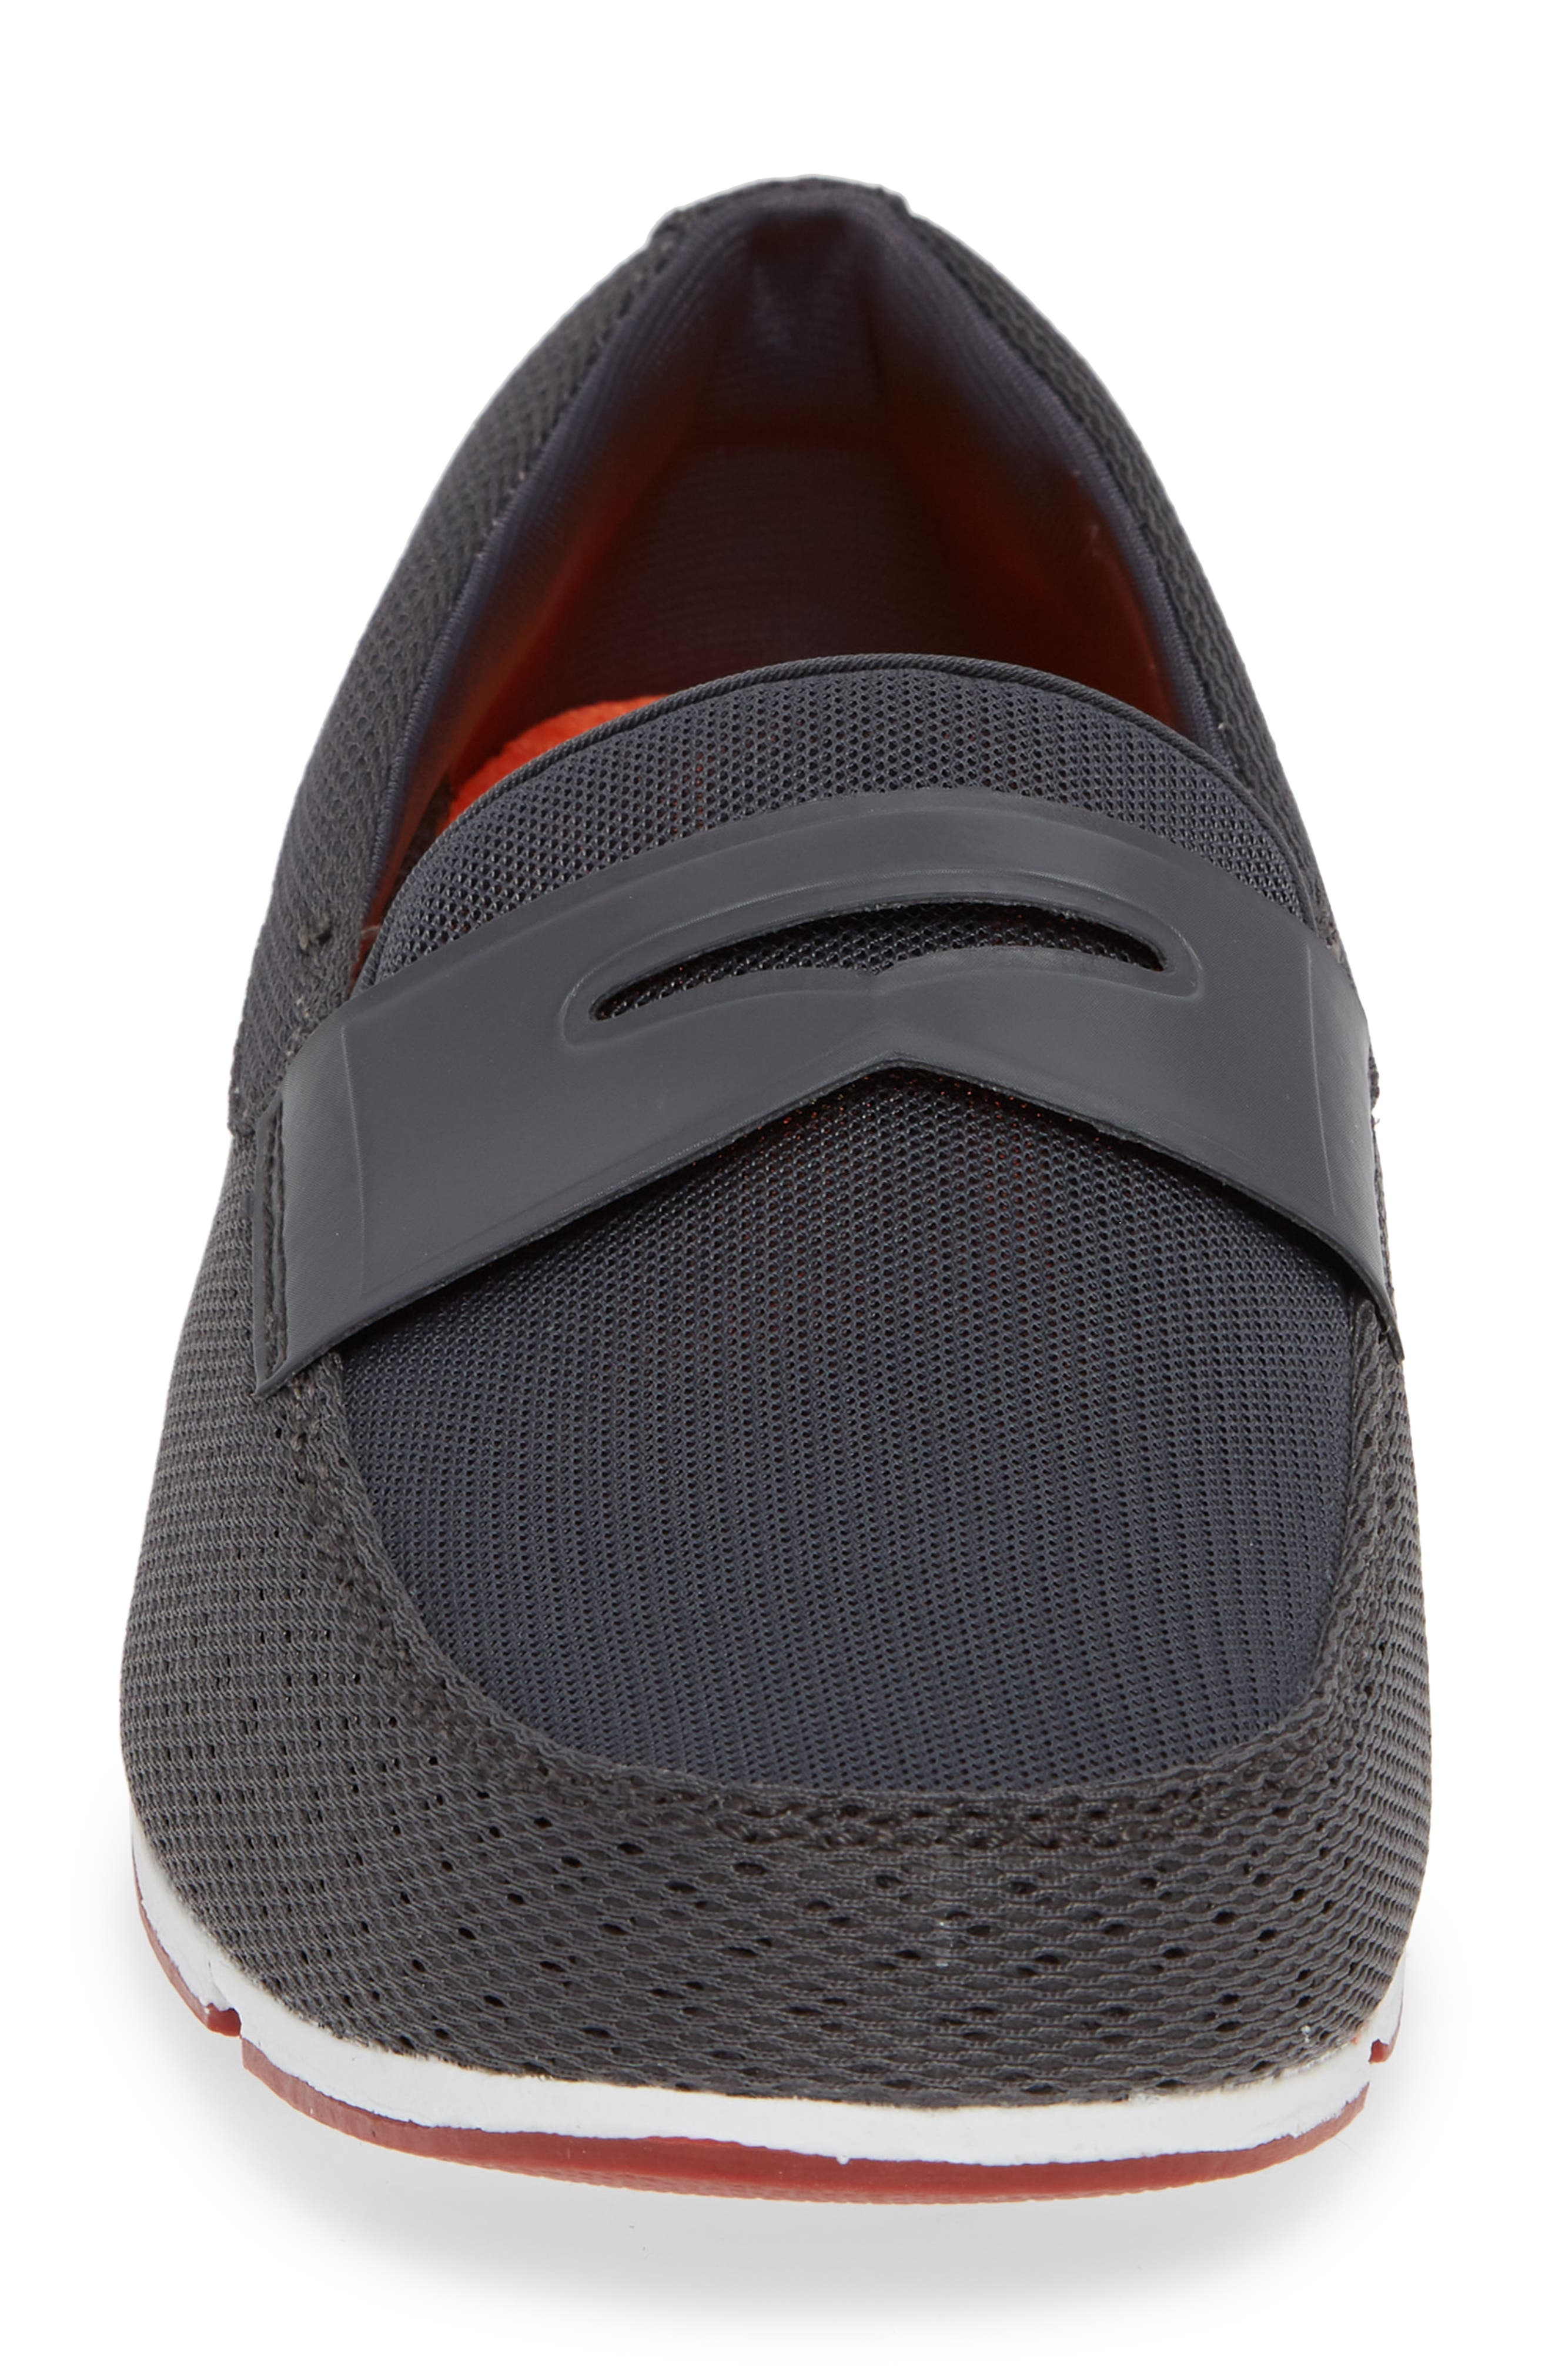 Breeze Penny Loafer,                             Alternate thumbnail 5, color,                             Dark Gray/Red Lacquer